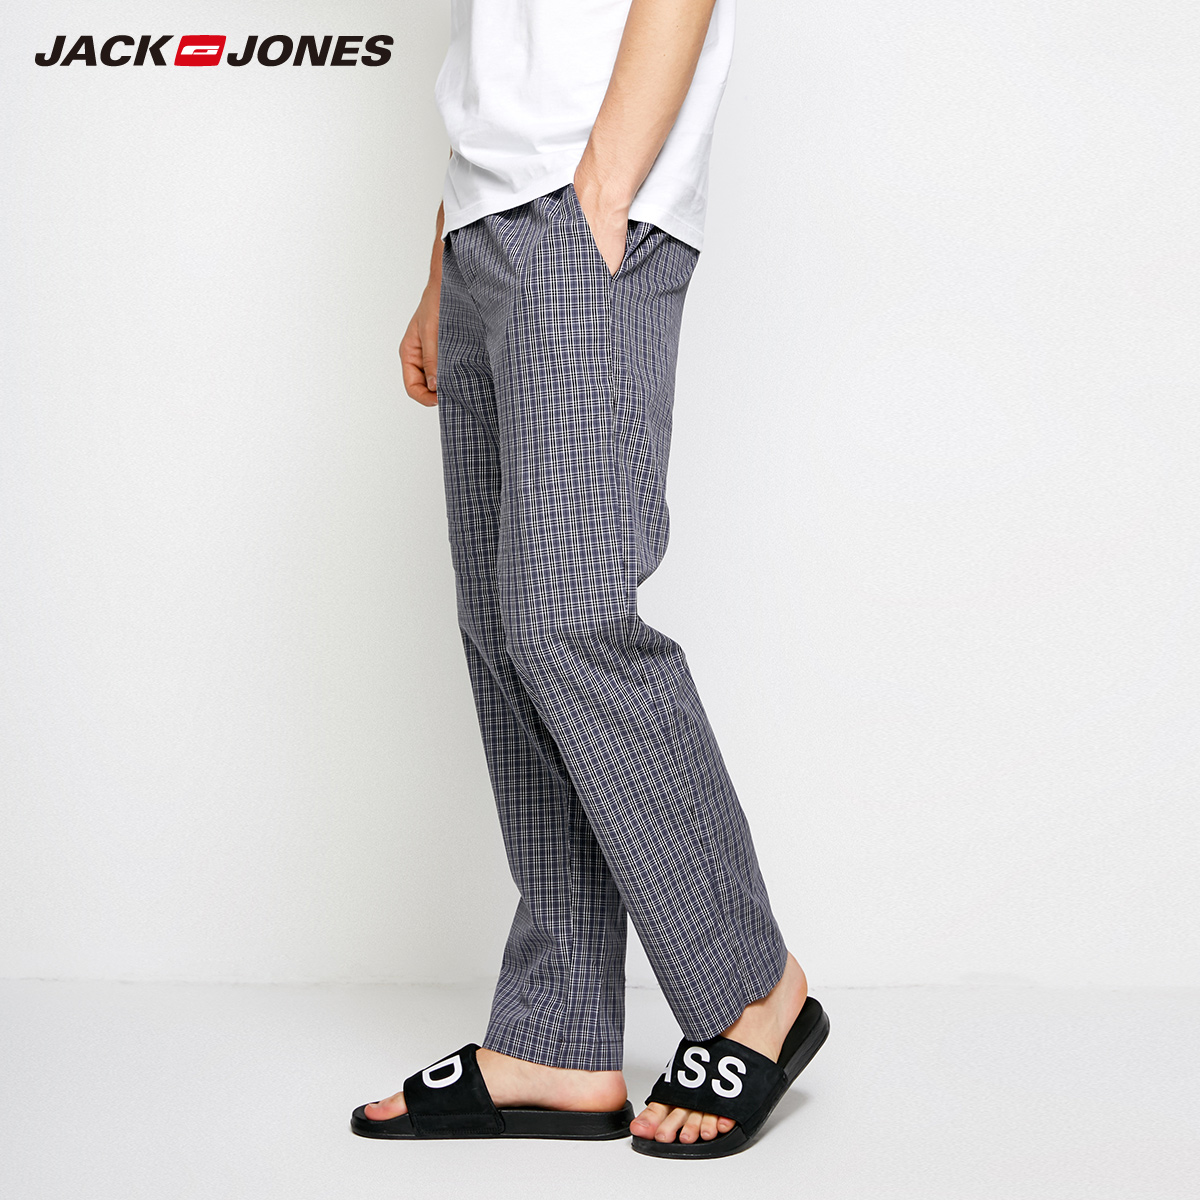 Jack Jones Spring Summer New Men Cotton Pants Casual Plaid Pants Men Trousers |2183HC501